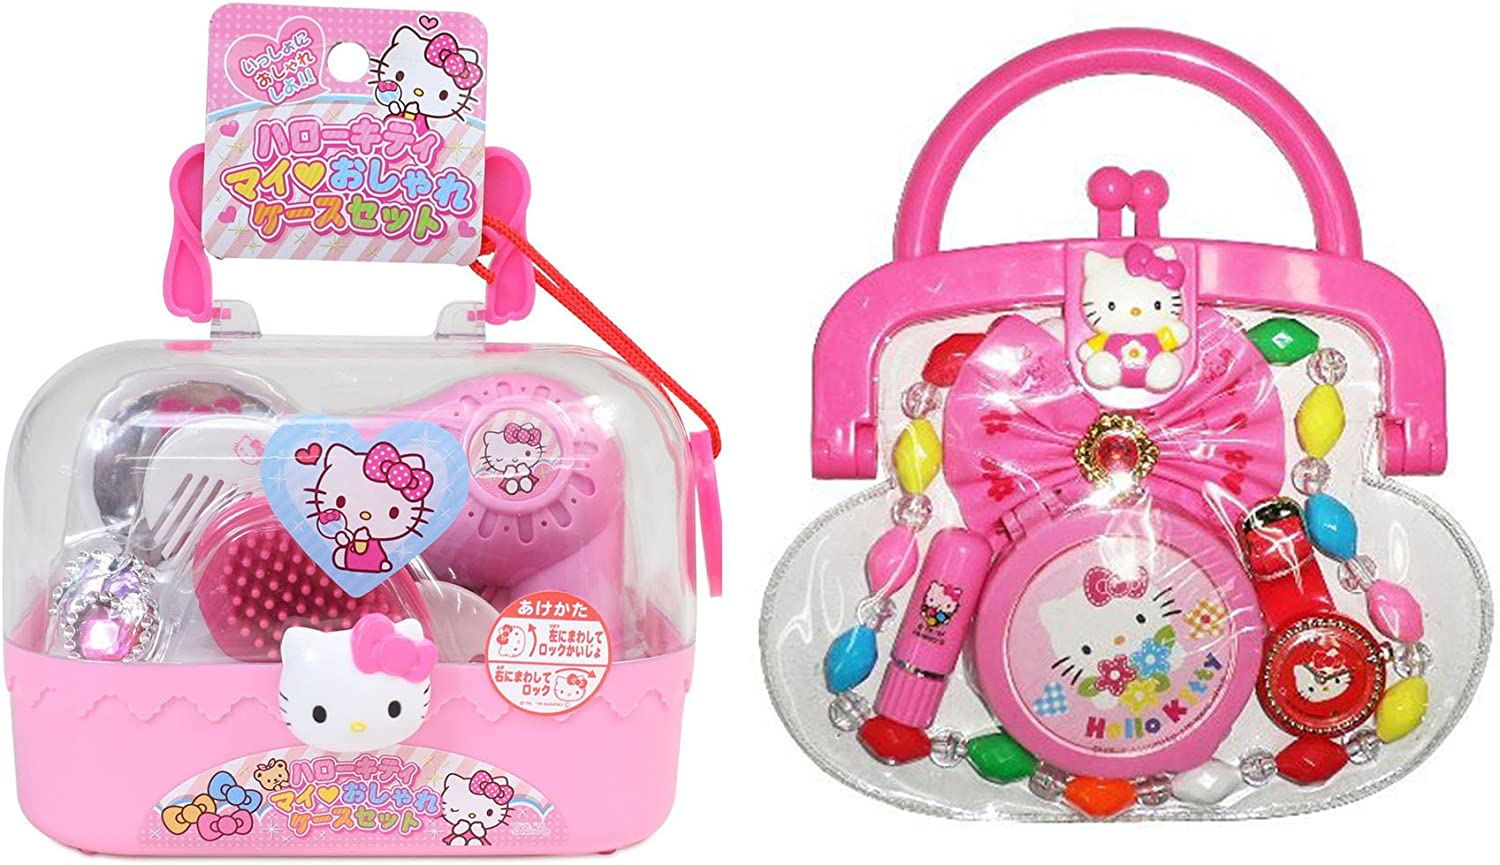 2 Hello Kitty Beauty Sets – Pink Styling Case and Purse Sets (Japan Import)